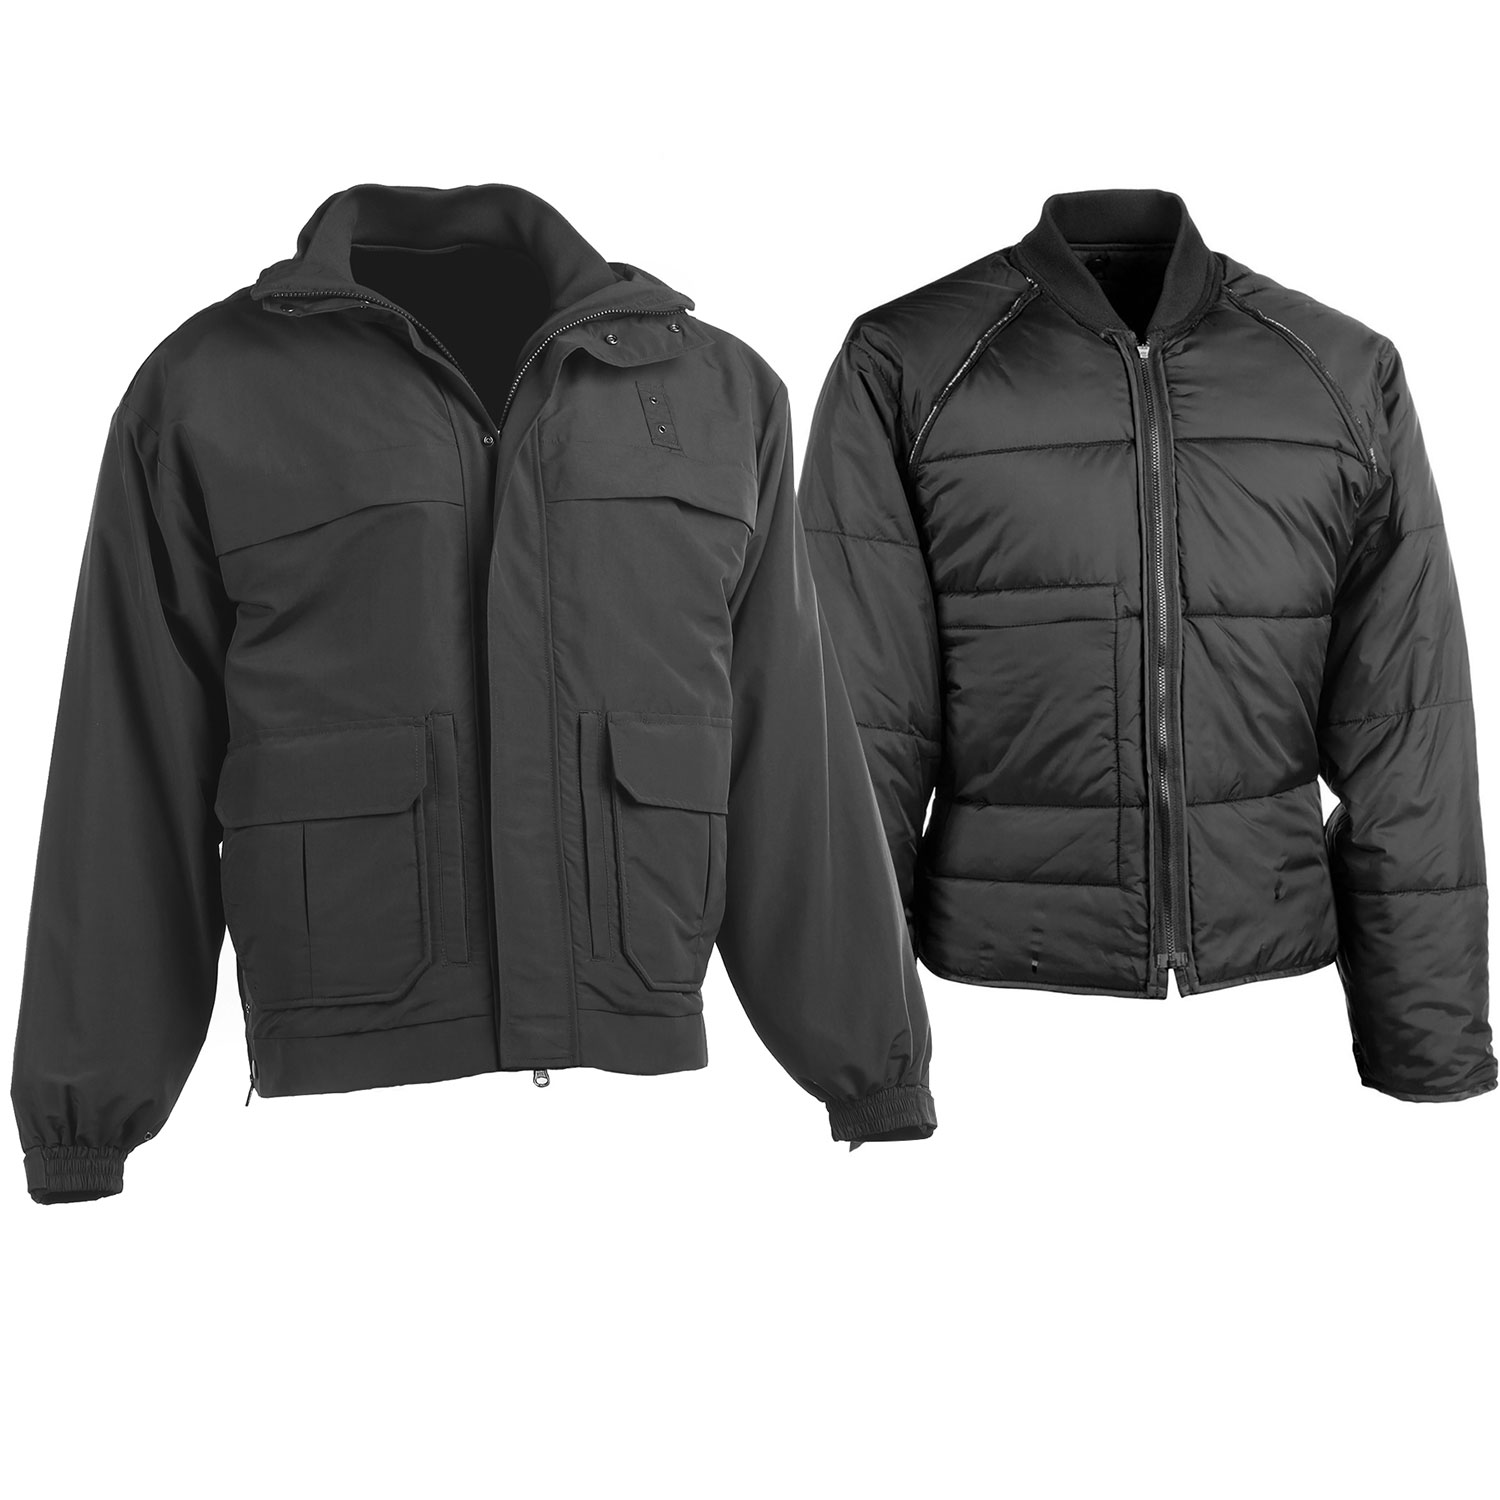 Flying Cross Endurance Public Safety Jacket System